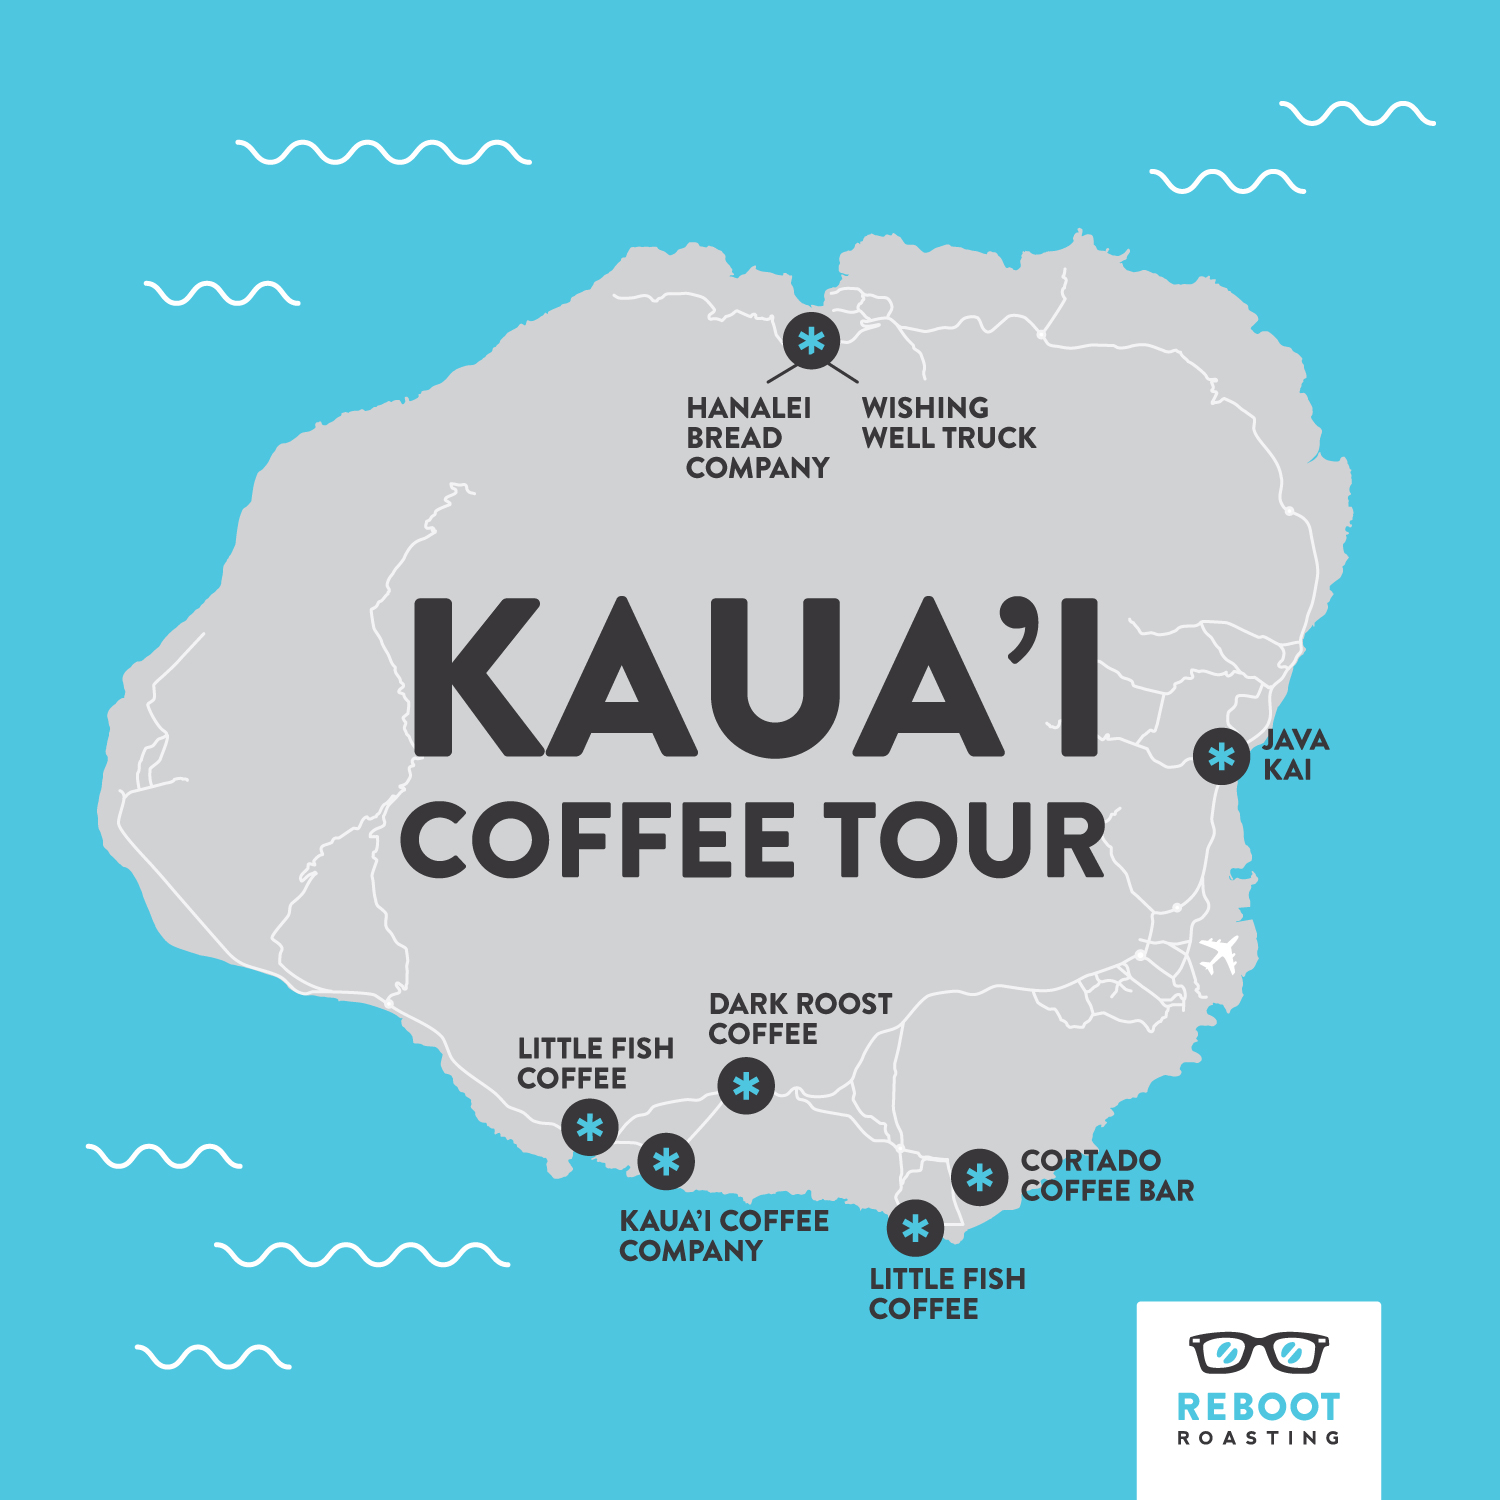 Kauai Coffee Tour 2017